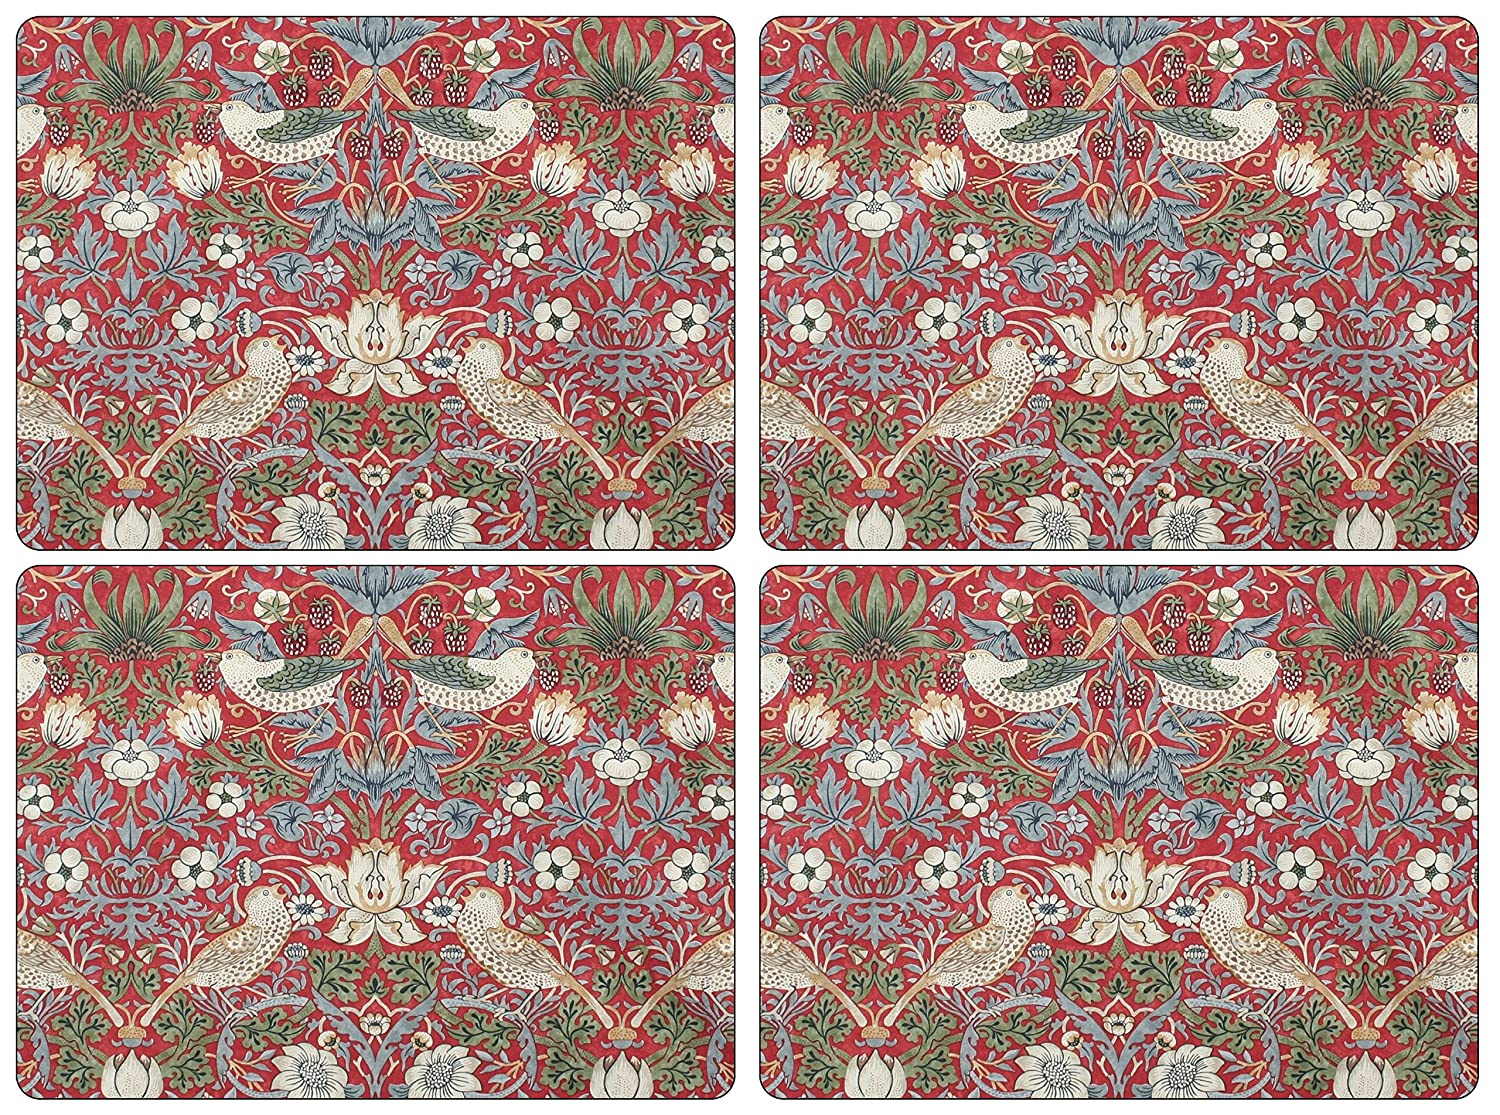 Pimpernel 2010648718 Placemats, Multicolor